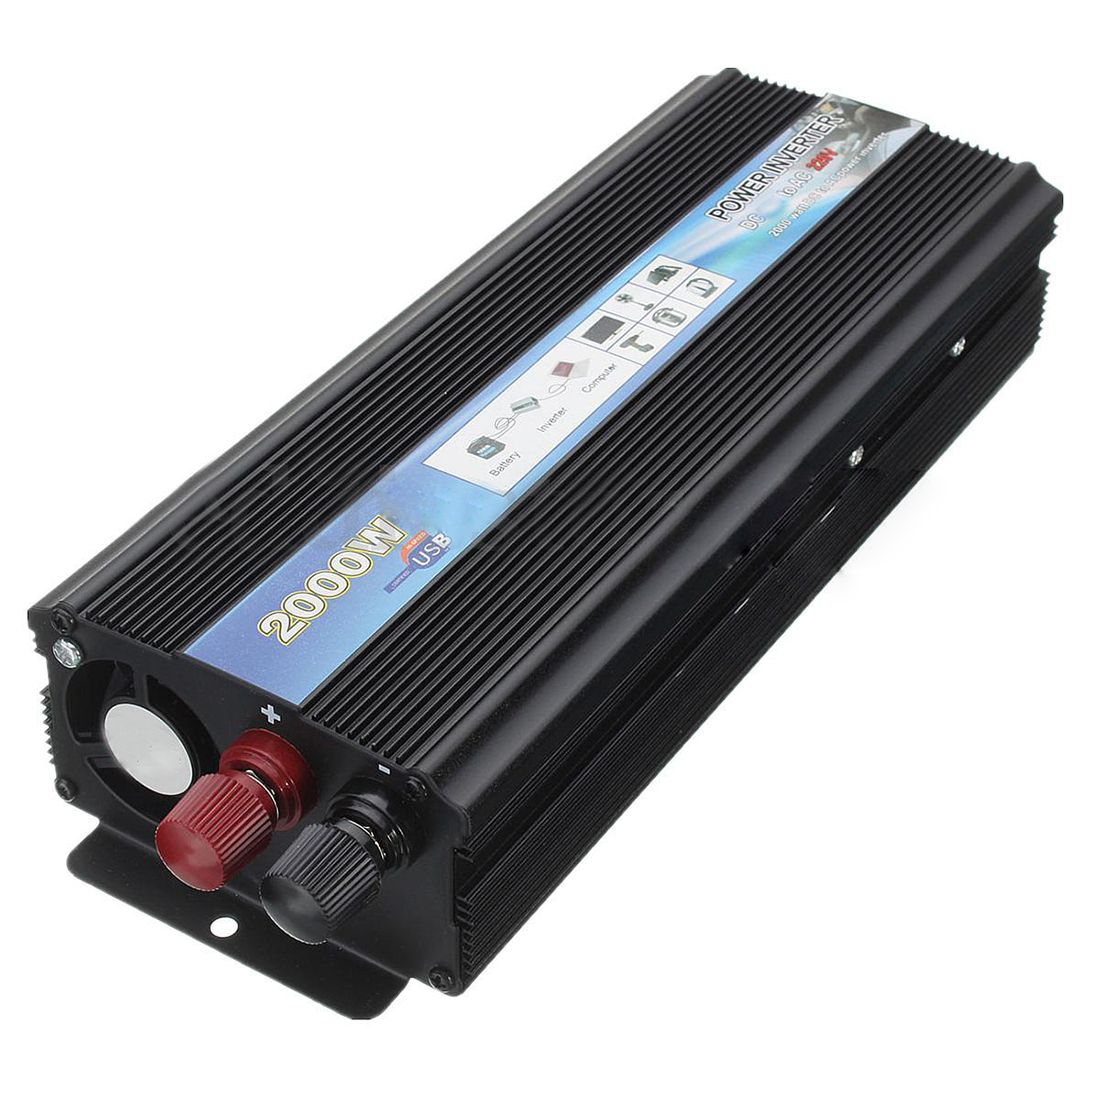 XUYUAN 2000W Car Vehicle USB DC 24V to AC 220V Power Inverter Adapter Converter